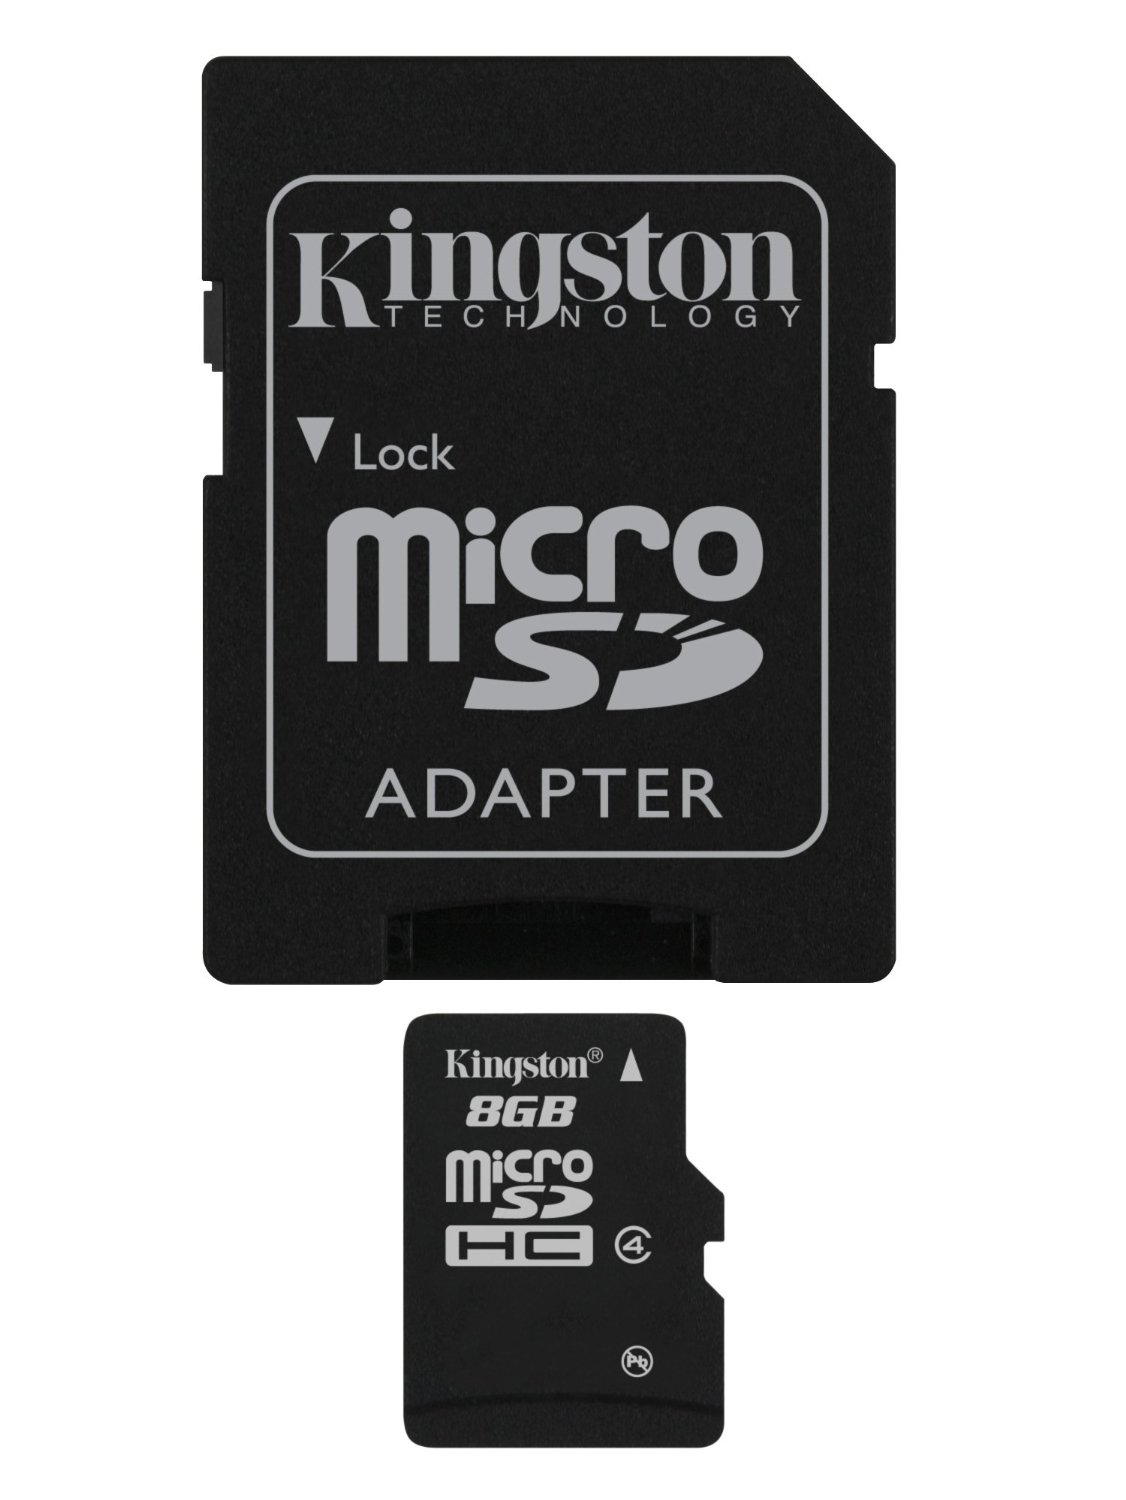 KINGSTON 16GB microSDHC Memory Card - High Capacity Class 4